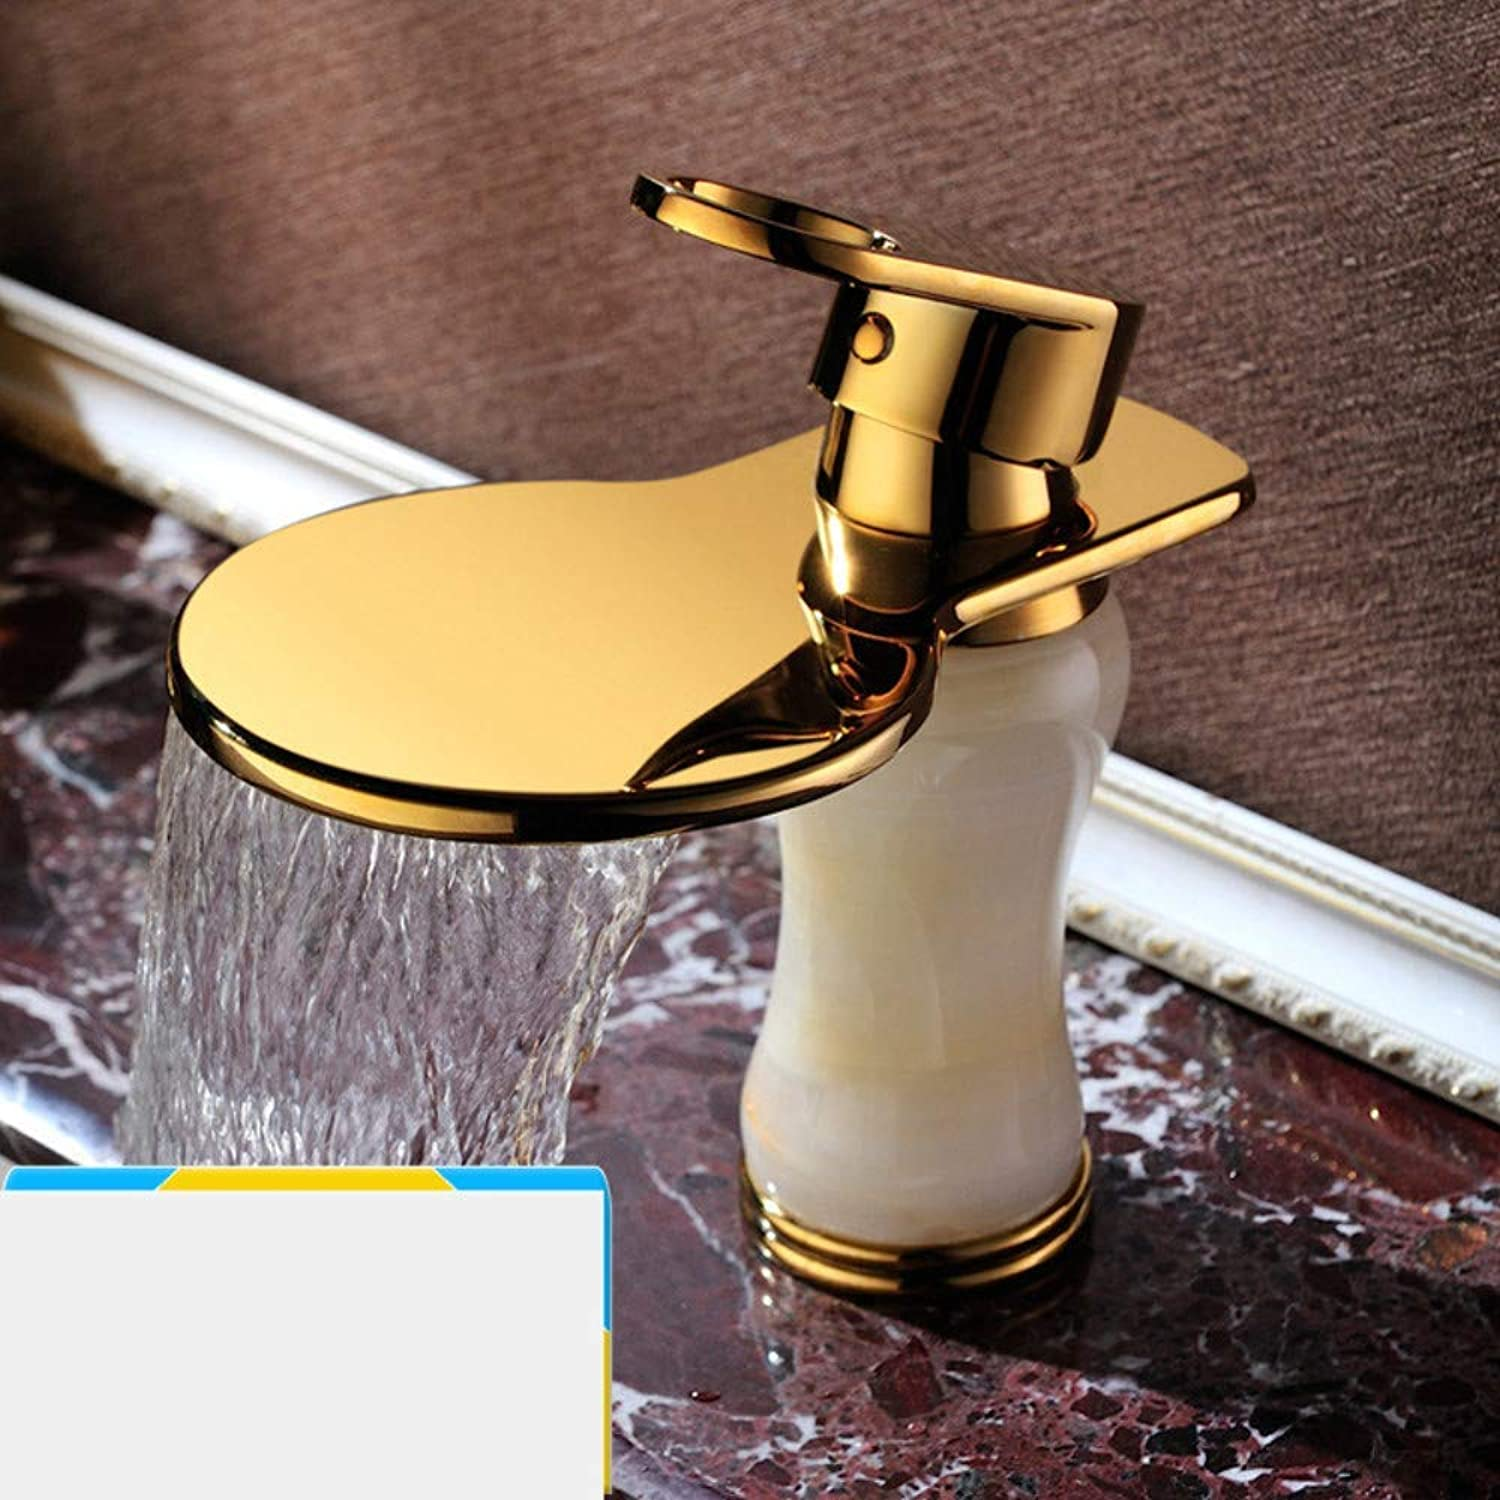 Water Tap Sink Taps Waterfall Faucet Jade Hot and Cold European Basin Faucet Single Hole gold-Plated Waterfall Faucet Wash Basin